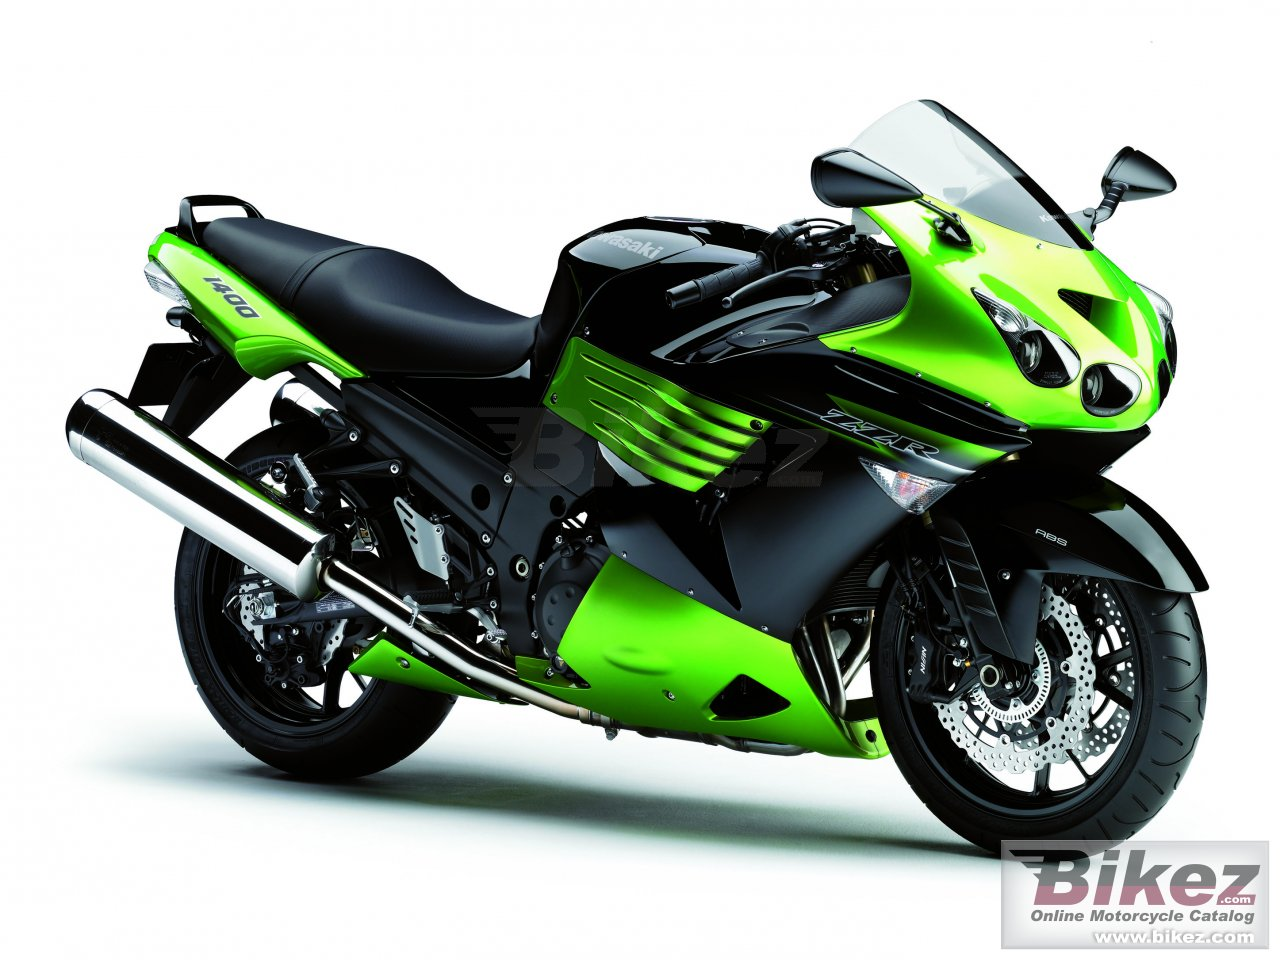 Big Kawasaki zzr 1400 picture and wallpaper from Bikez.com